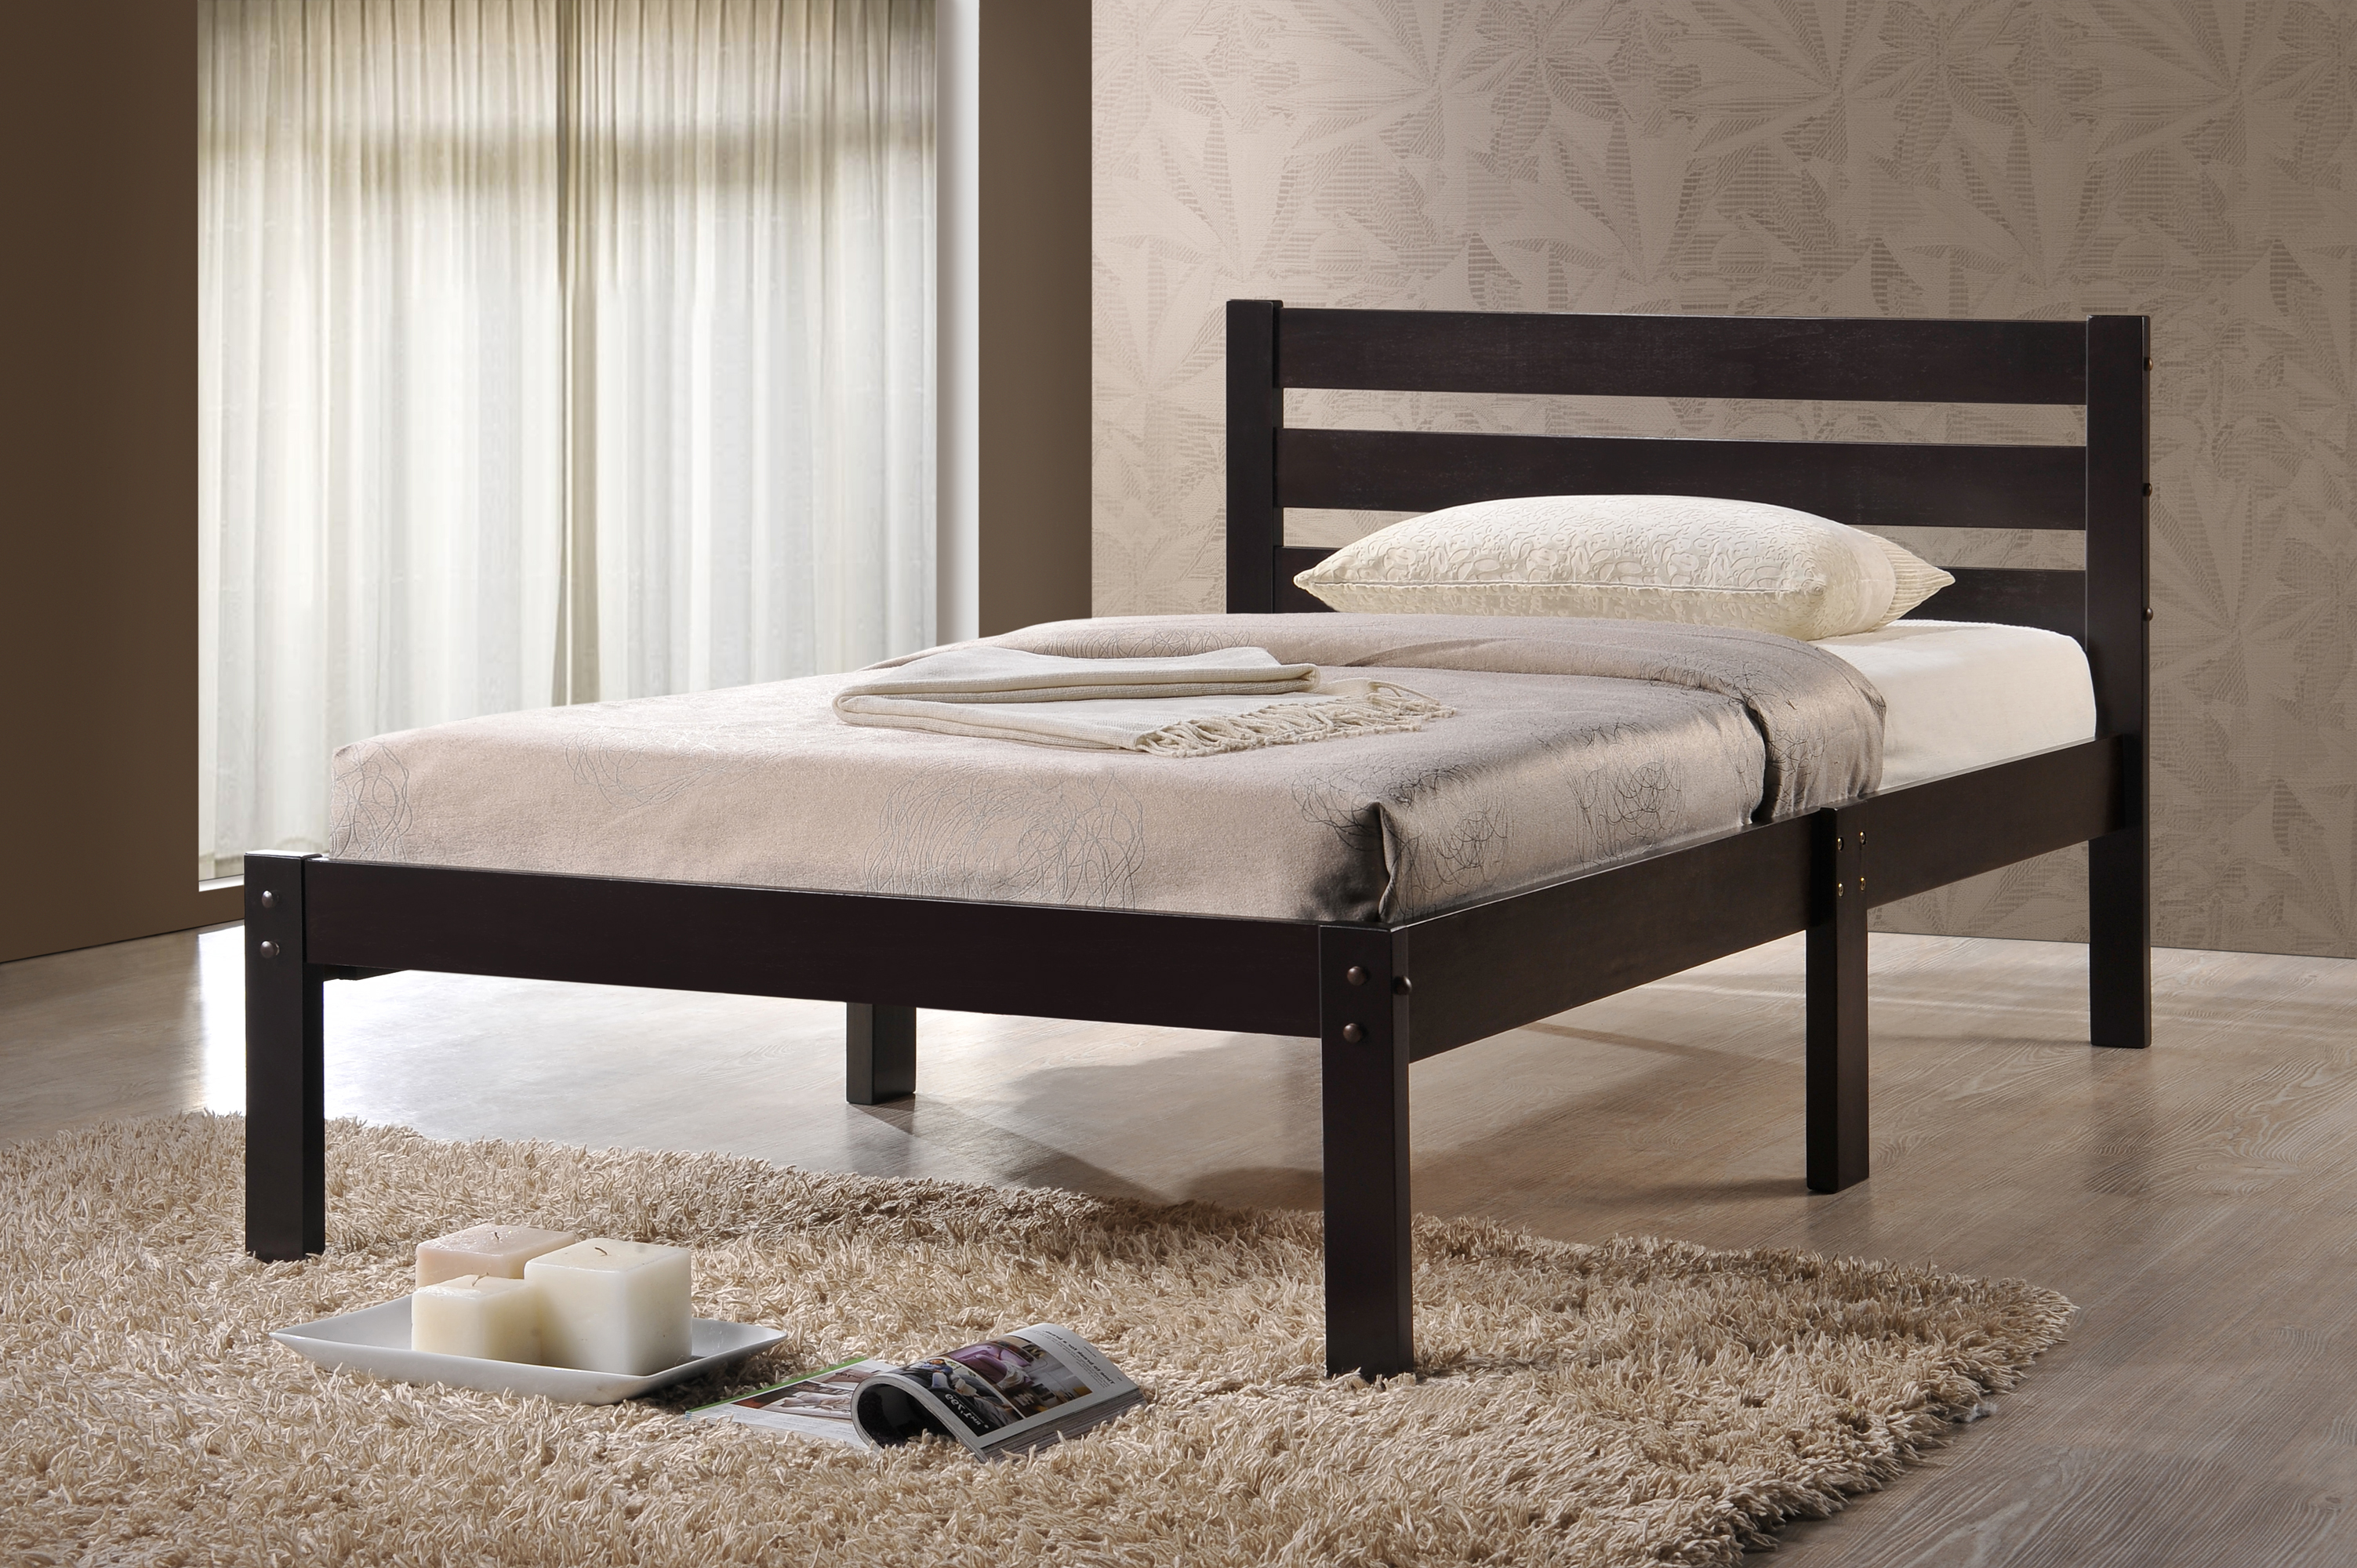 mako twin platform bed dallas tx | kids bed - furniture nation